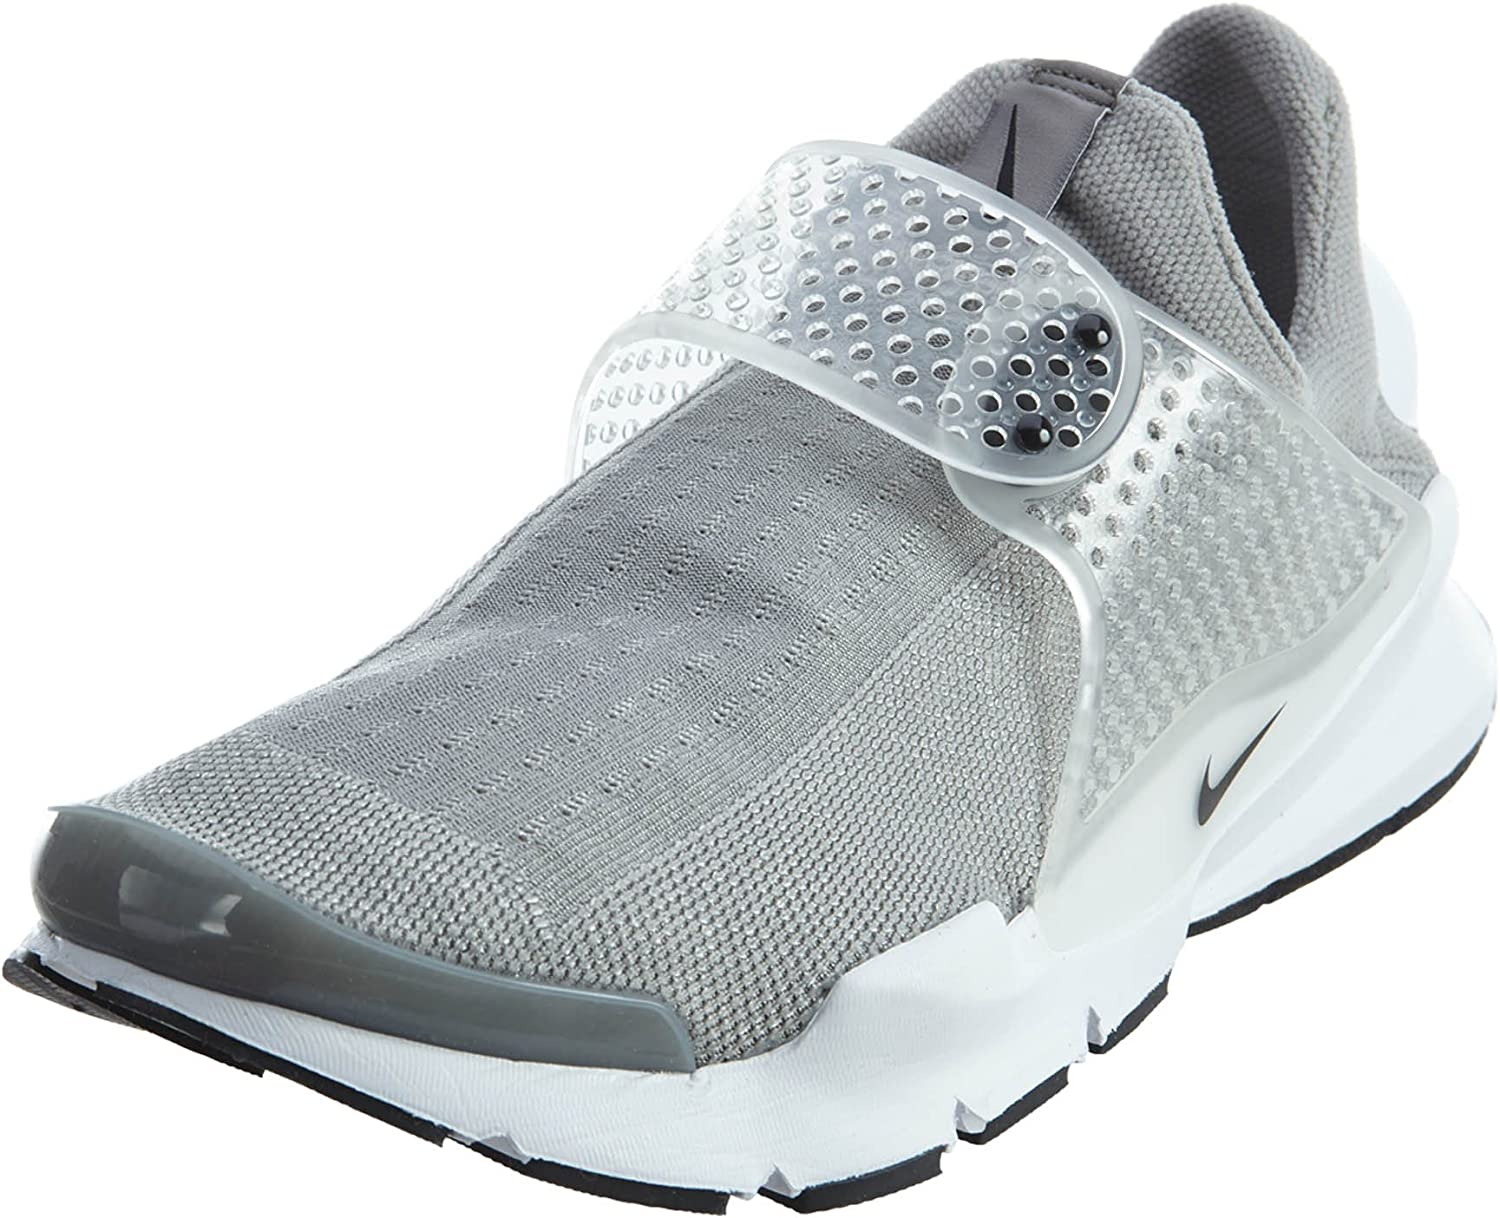 Nike Mens Sock Dart Running Shoes Medium Grey Black White 819686-002 Size 9